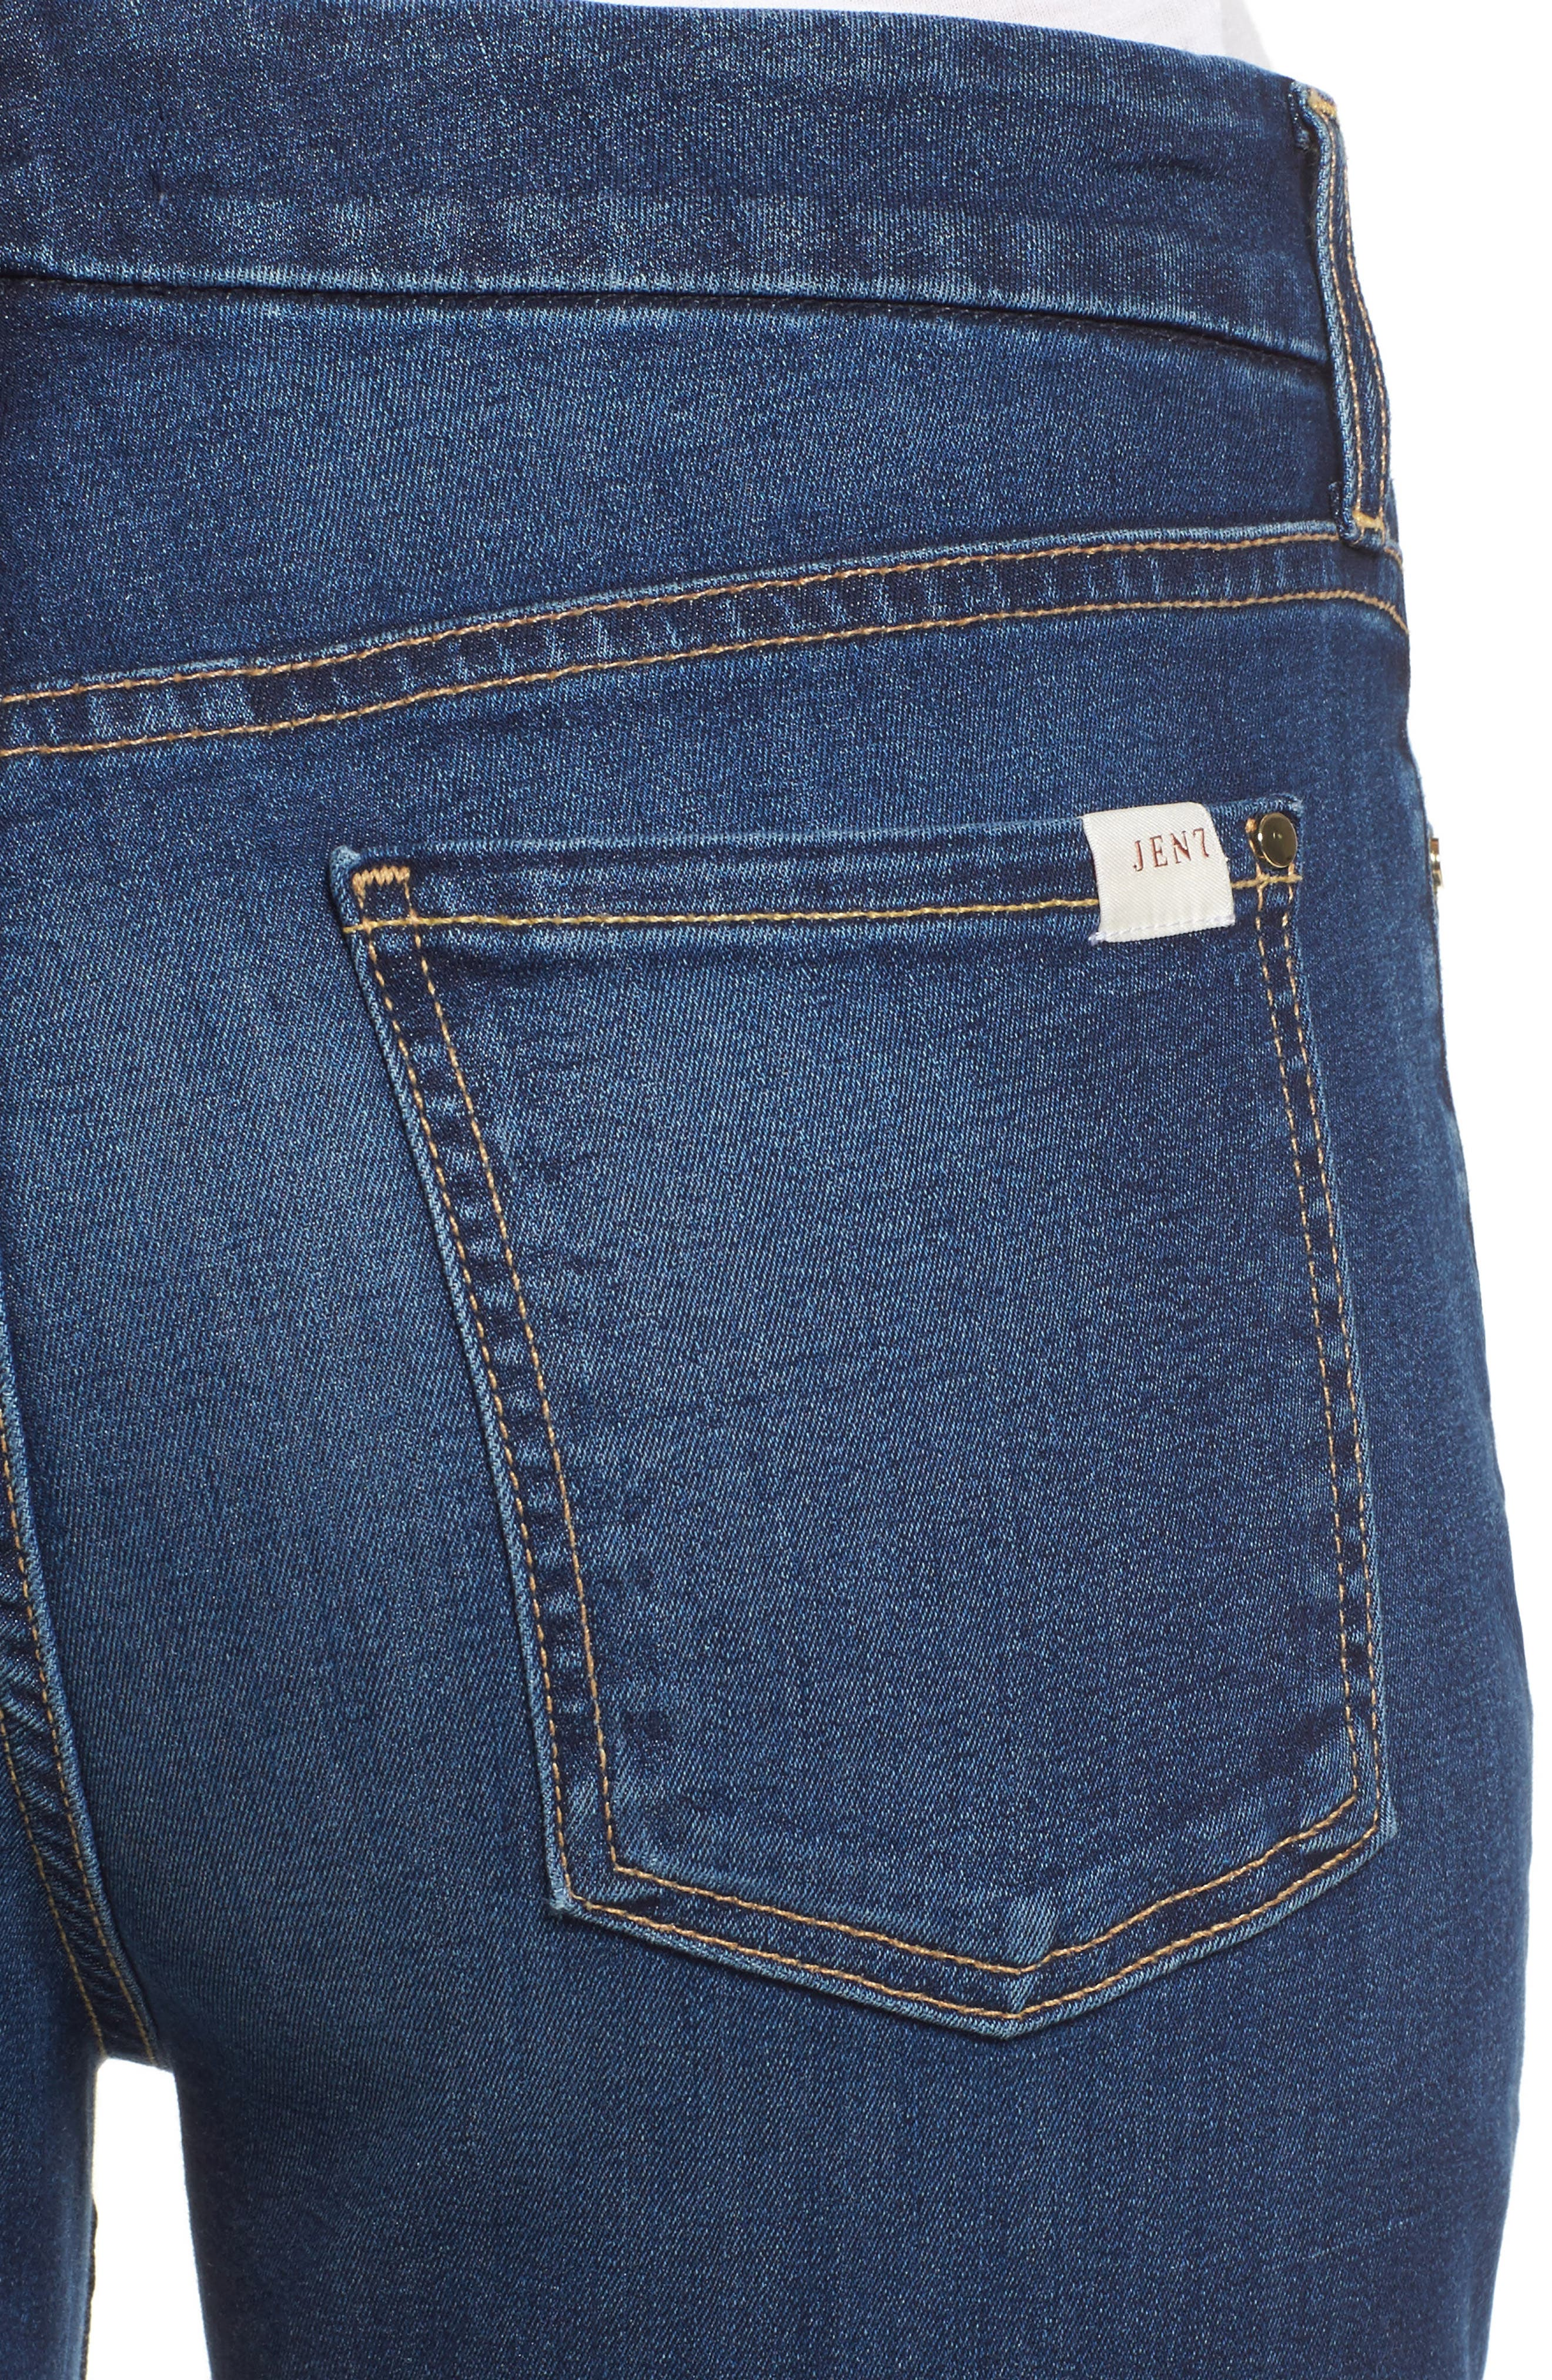 Slim Bootcut Jeans,                             Alternate thumbnail 4, color,                             401